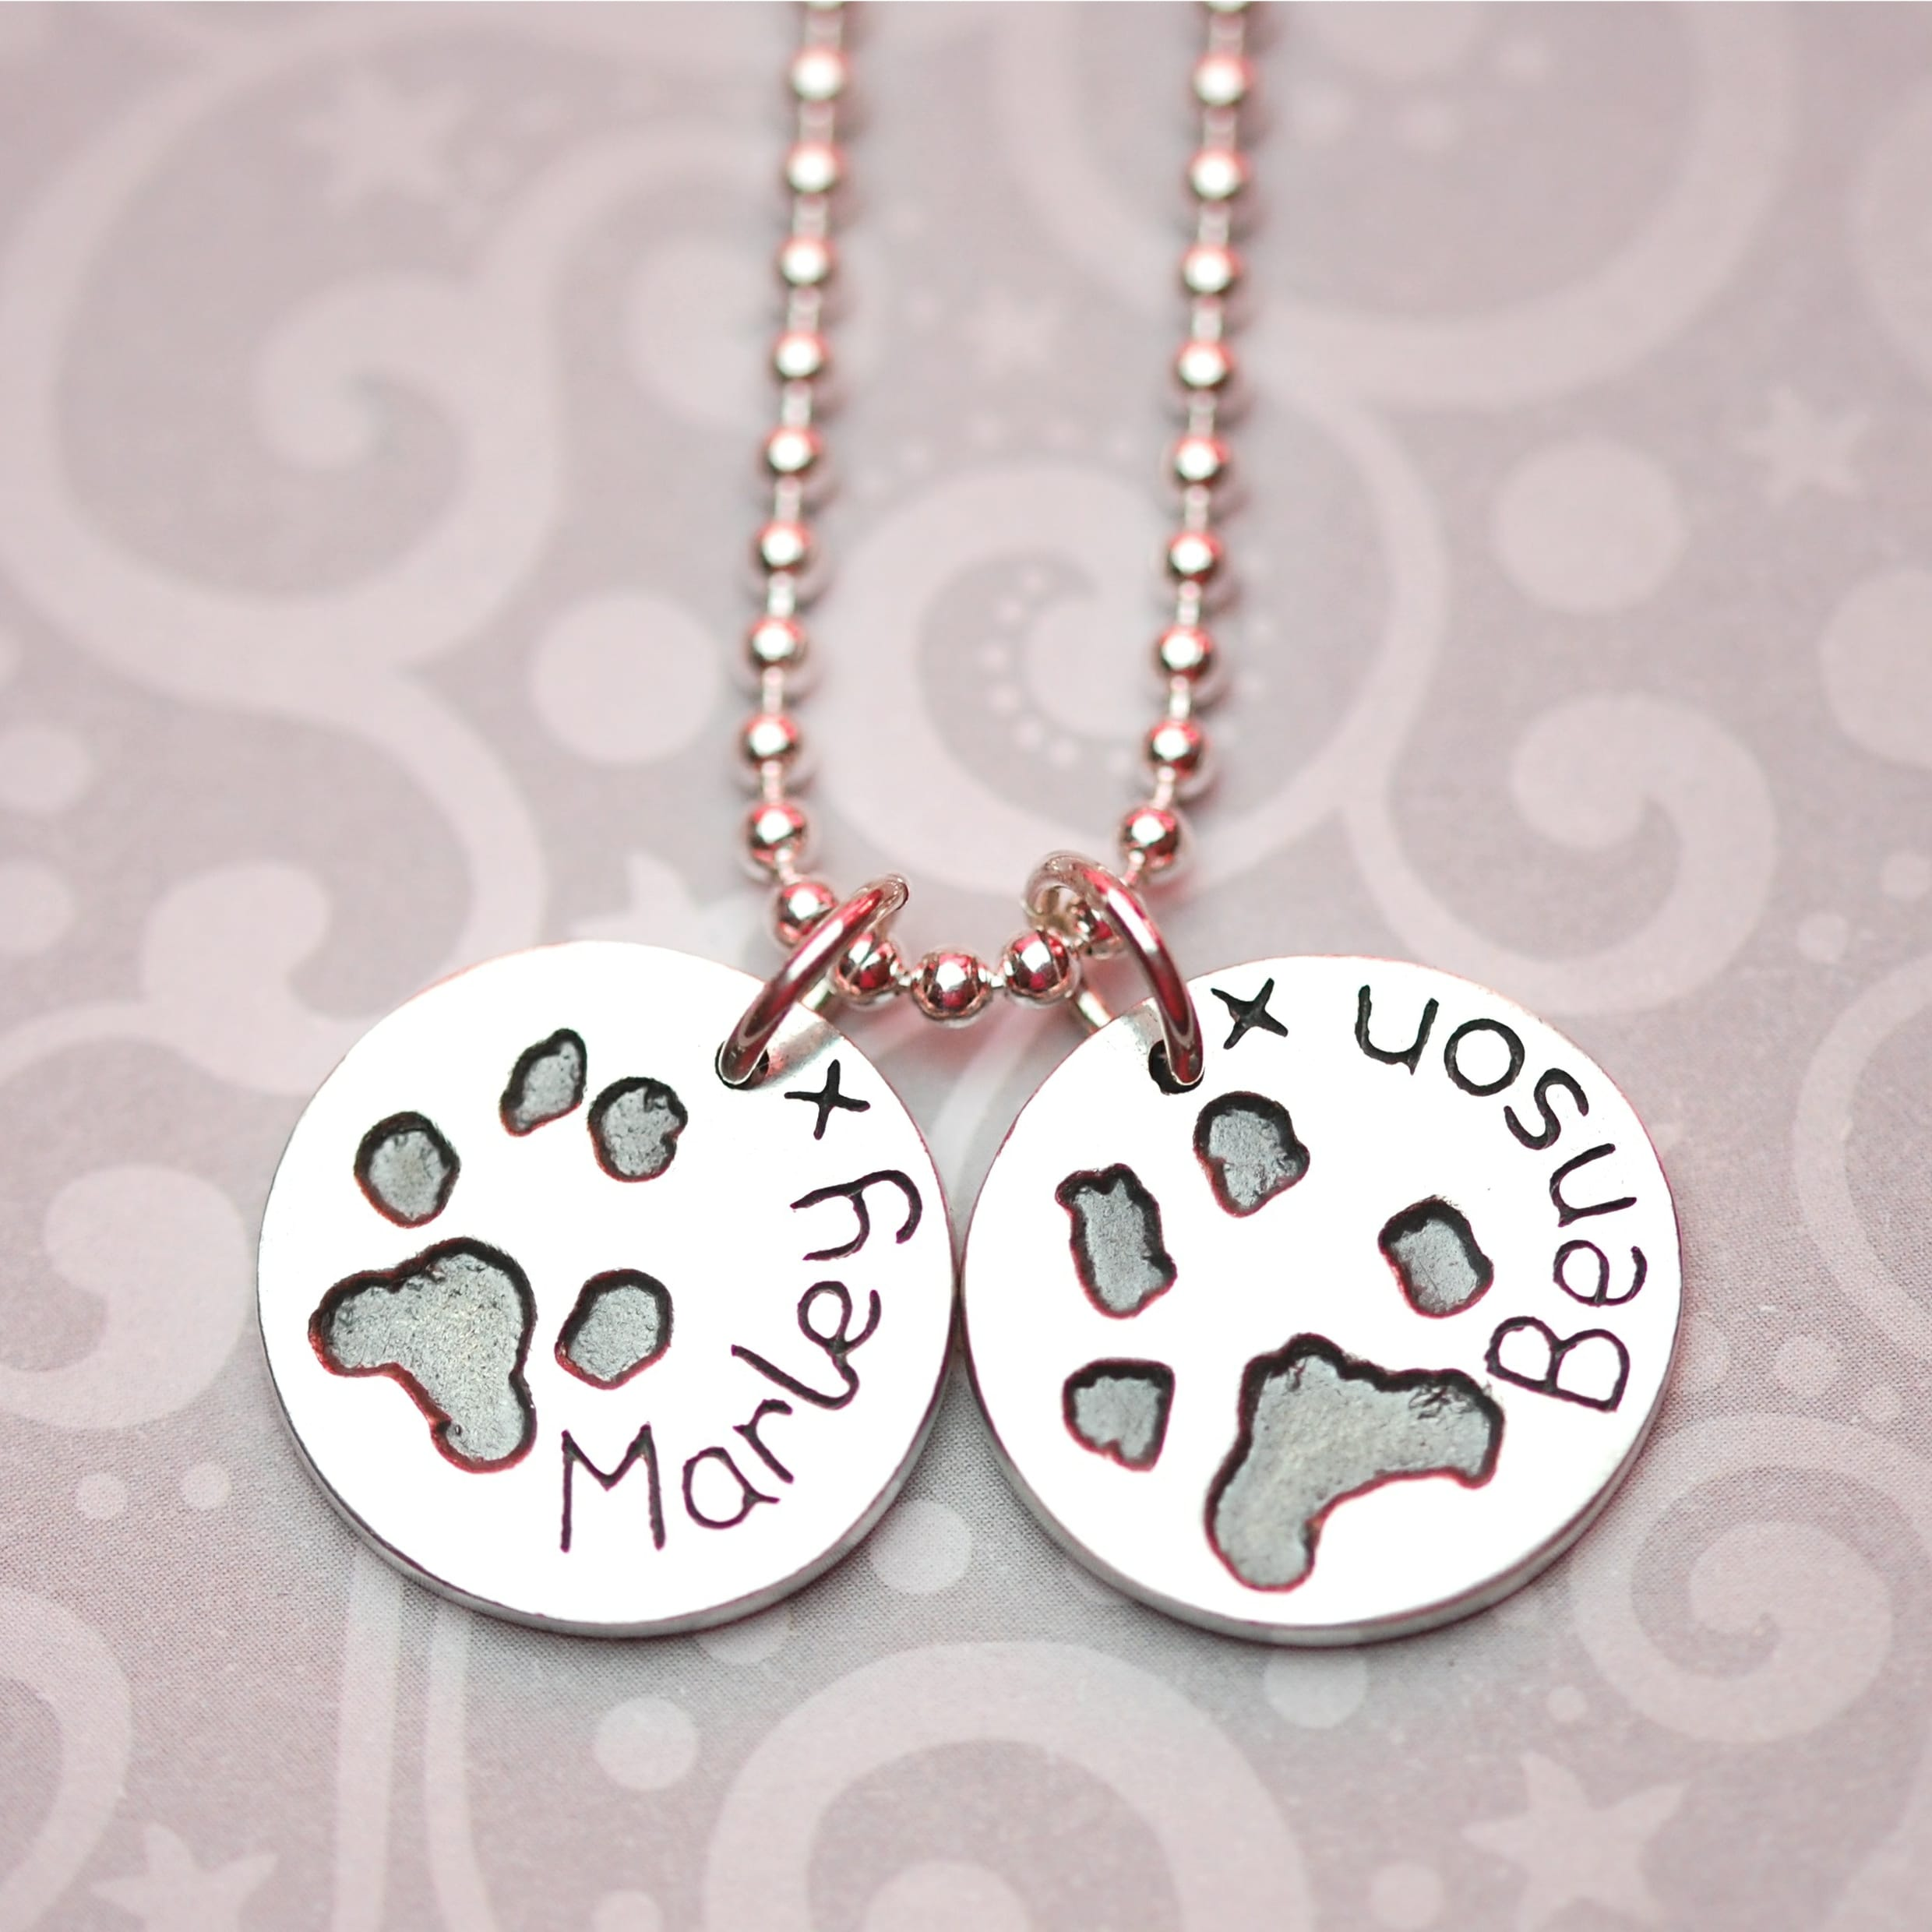 Regular silver circle charms with your dog's paw prints and names